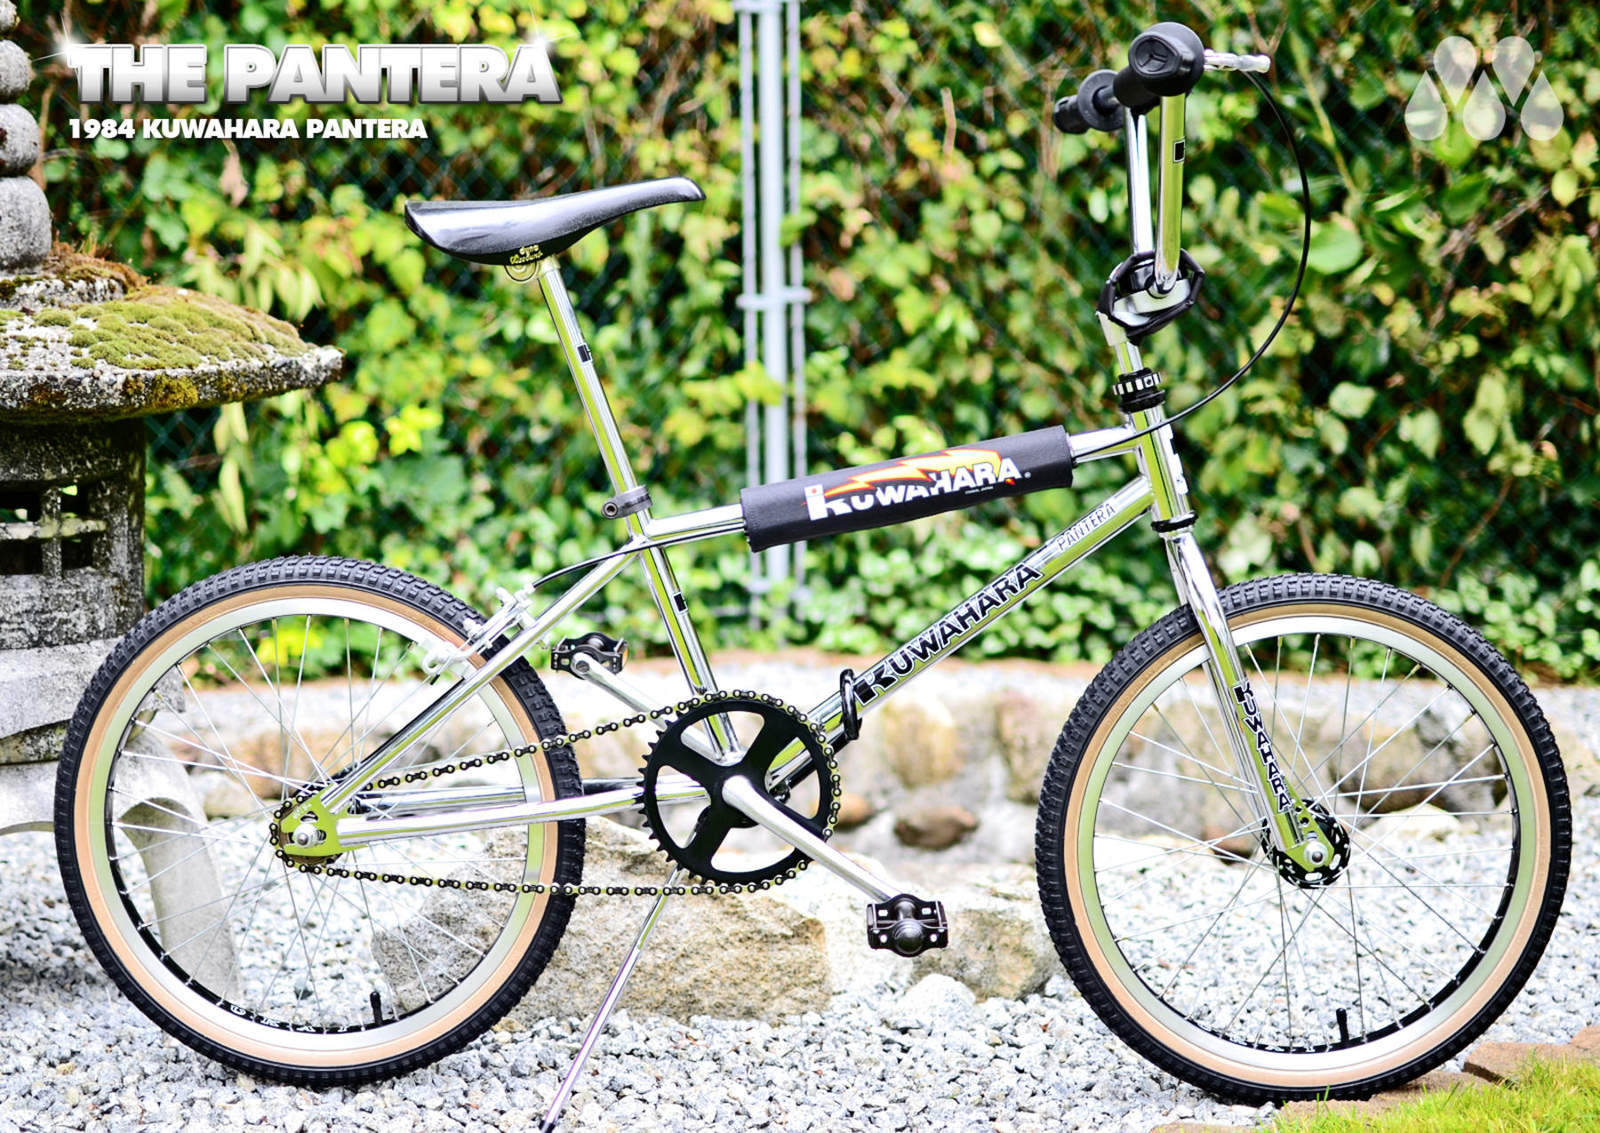 http://uploads.bmxmuseum.com/user-images/61851/1984pantera_1_blowup5c9f7a2e09.jpg